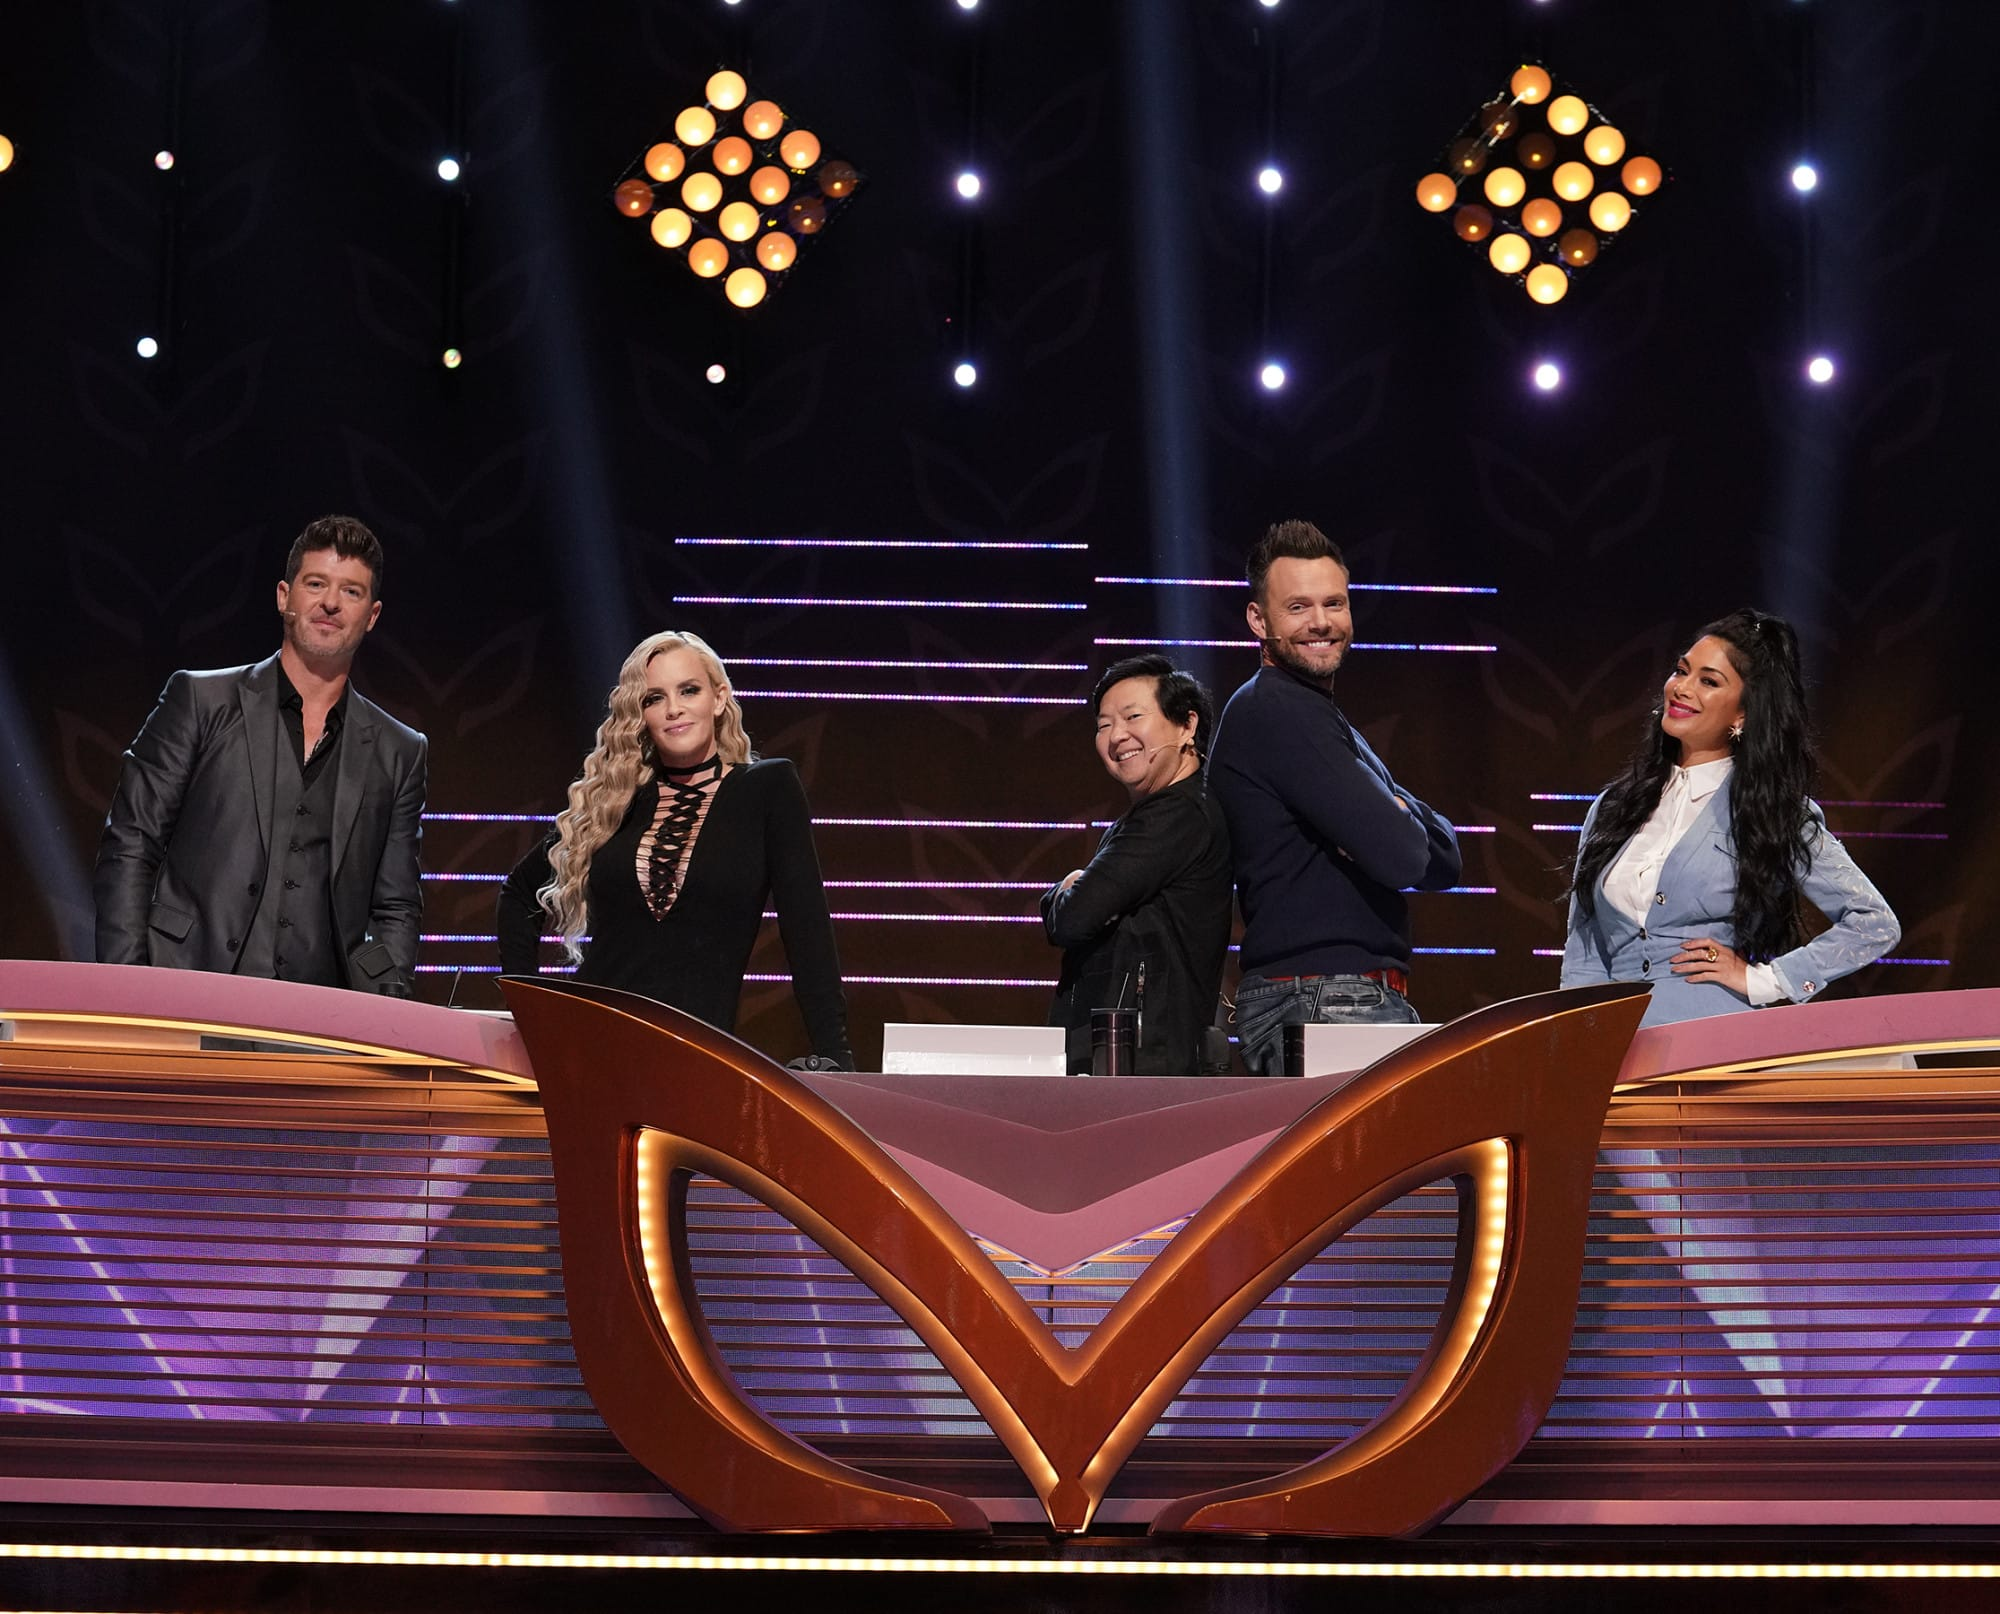 """THE MASKED SINGER: L-R: Panelists: Robin Thicke, Jenny McCarthy, Ken Jeong, guest panelist Joe McHale and panelist Nicole Scherzinger in the all-new """"Five Masks No More"""" episode of THE MASKED SINGER airing Wednesday, Jan. 16 (9:00-10:00 PM ET/PT) on FOX. © 2019 FOX Broadcasting. CR: Michael Becker / FOX."""